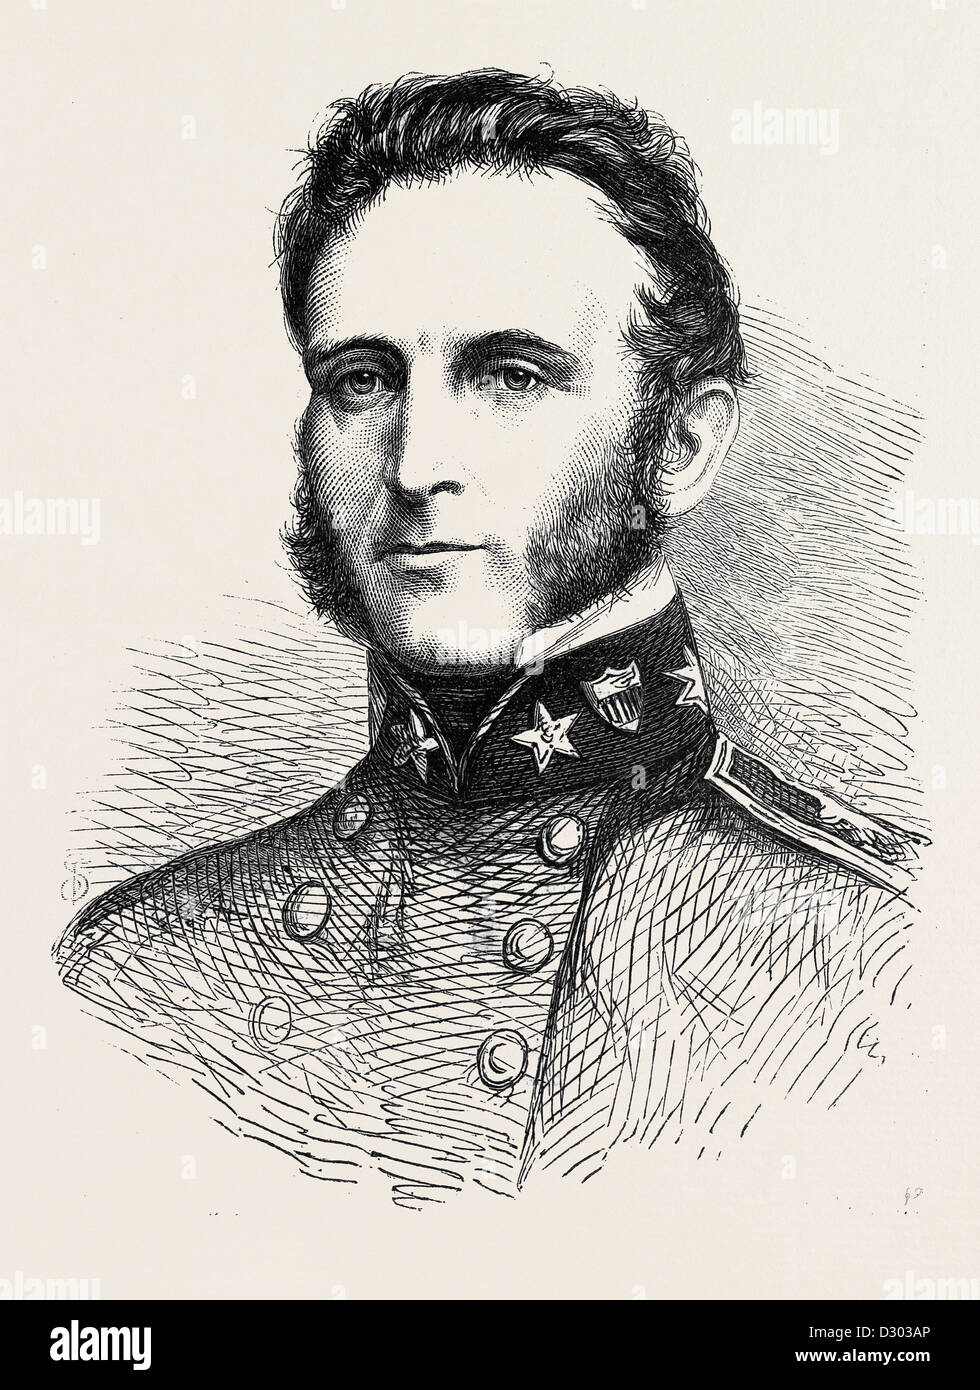 MAJOR-GENERAL STONEWALL JACKSON OF THE CONFEDERATE ARMY 1862 - Stock Image